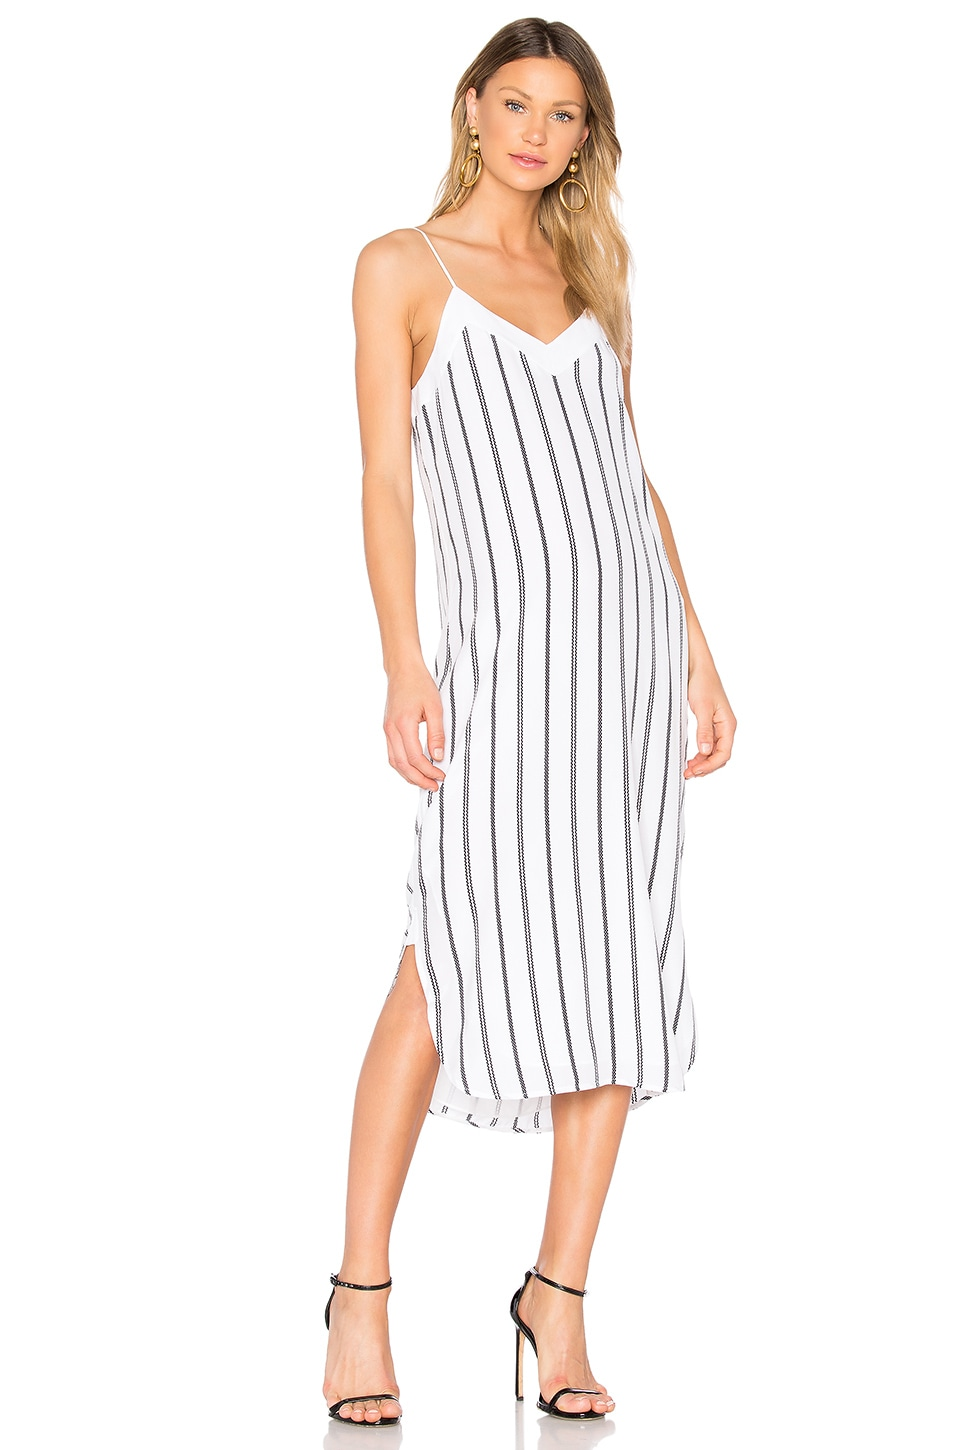 Equipment Dian Striped Dress in Bright White & Eclipse